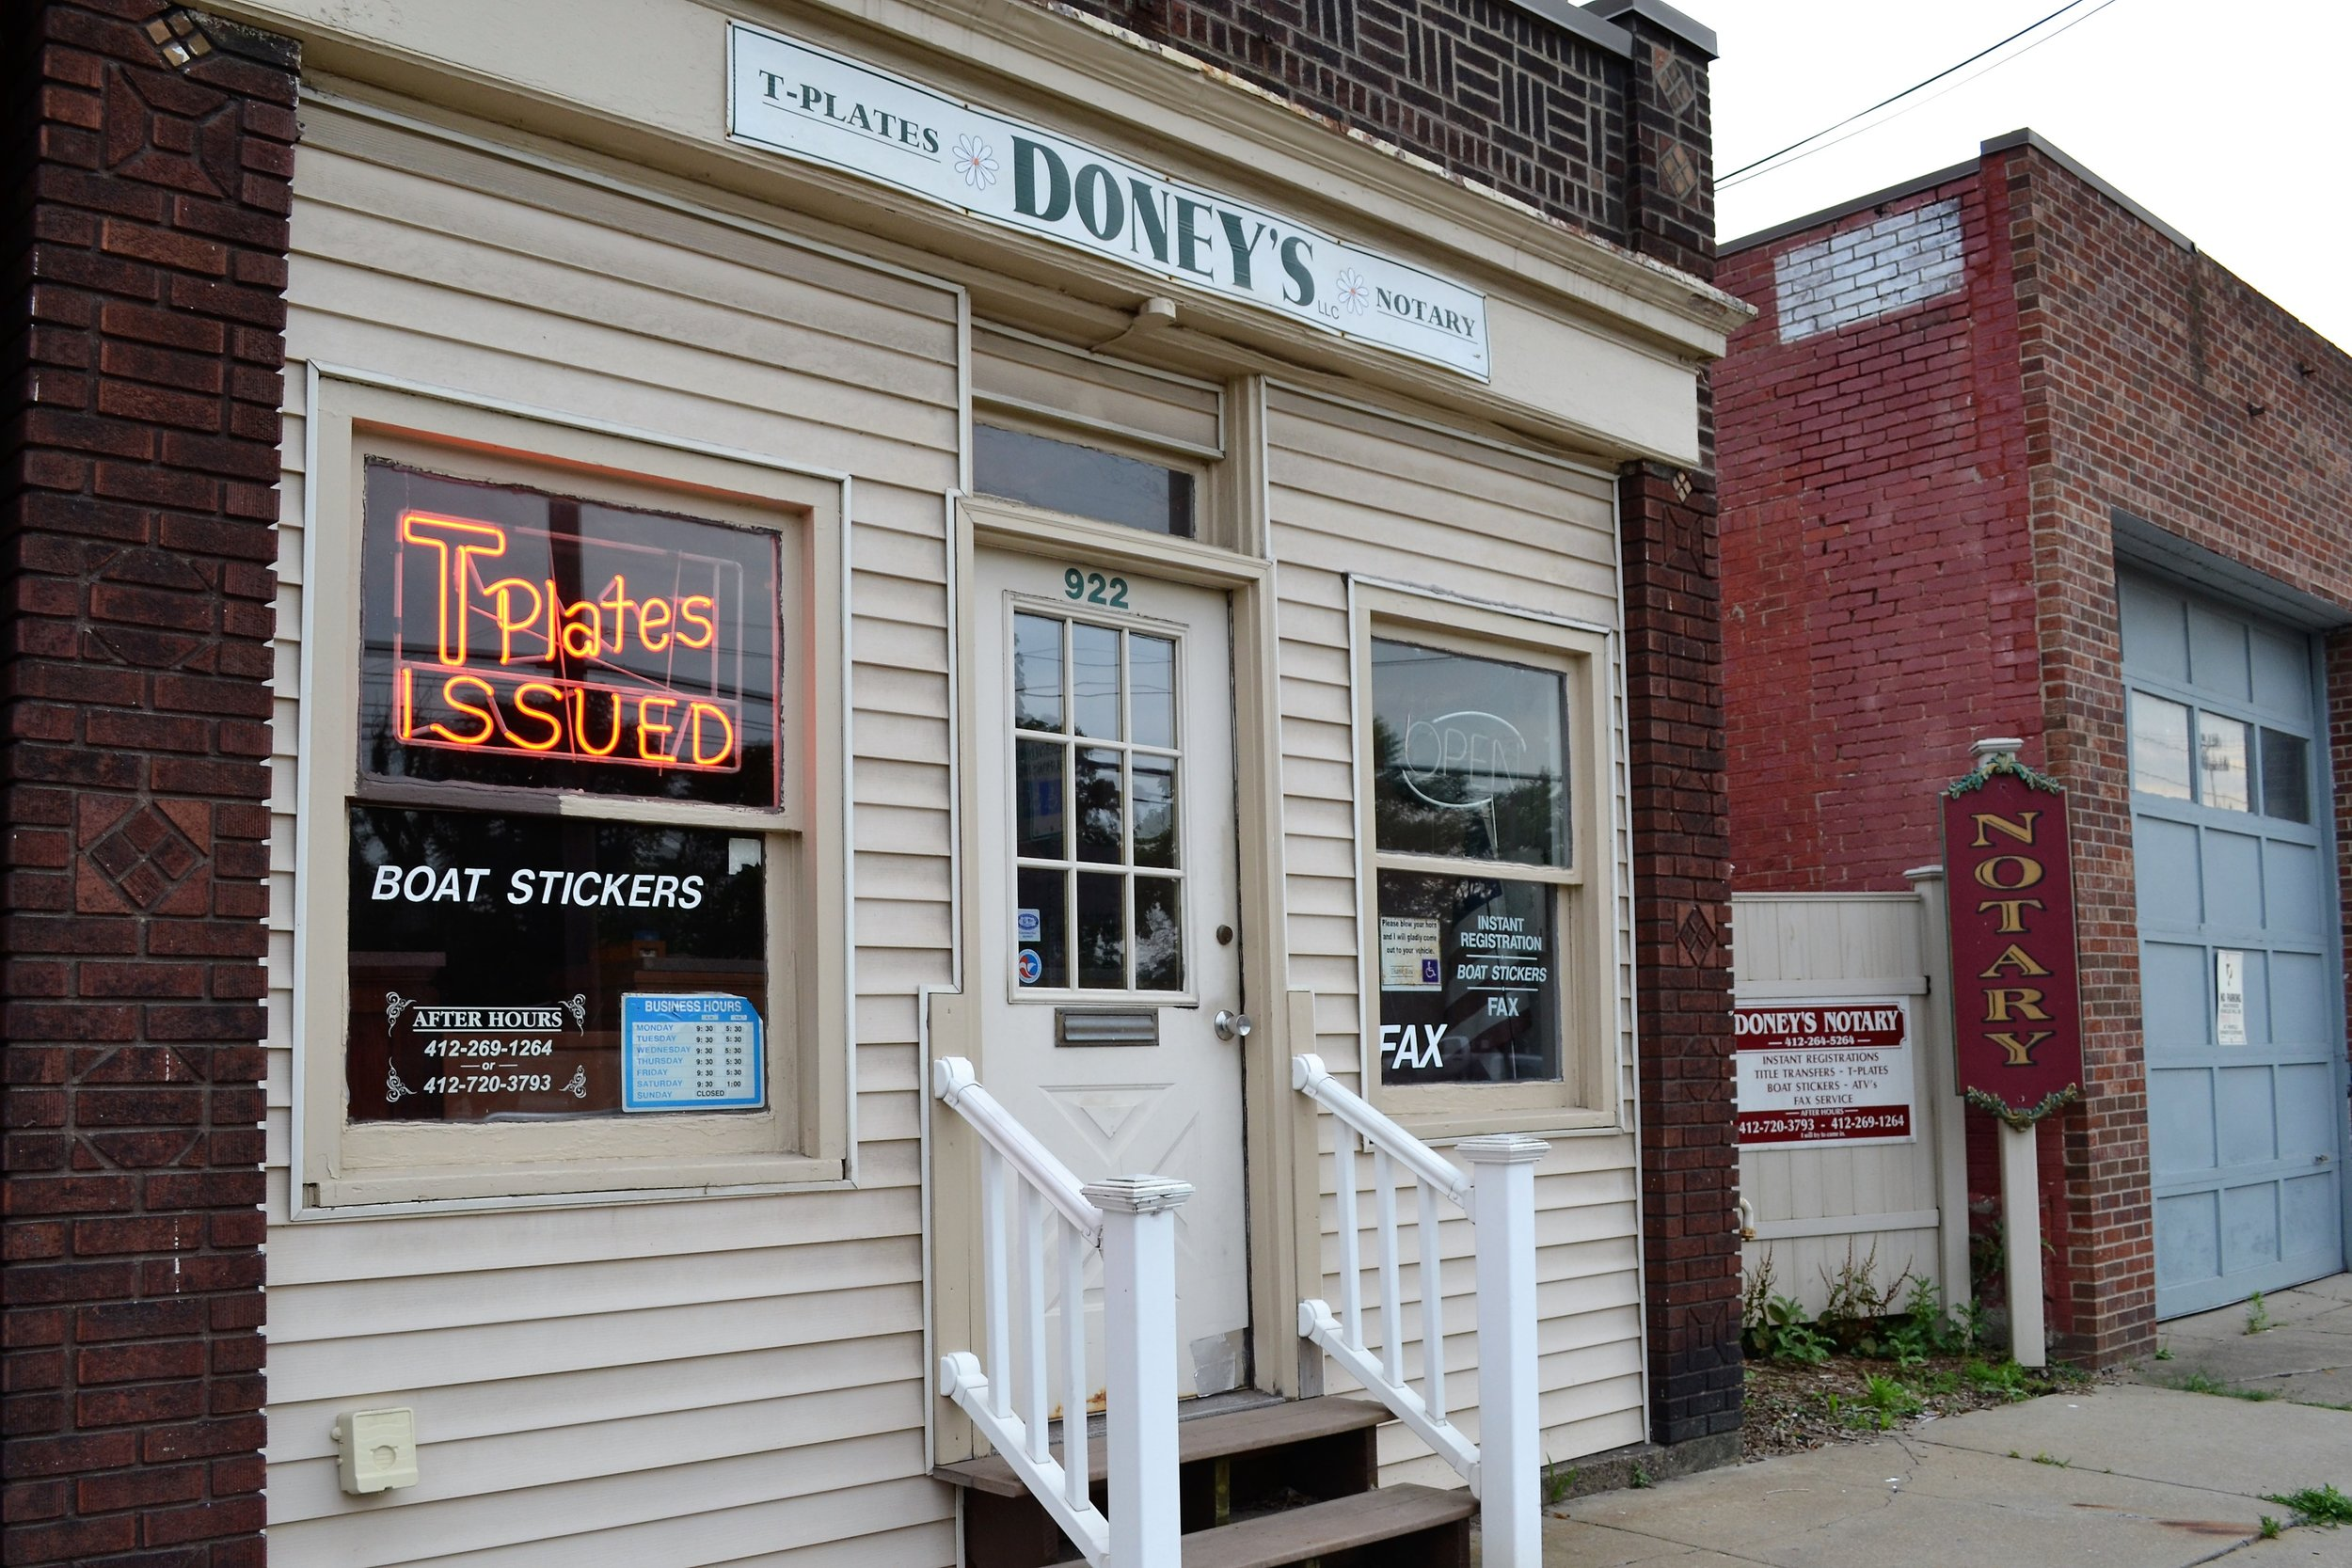 Doney's Notary - 922 4th Ave, (412) 389-9154